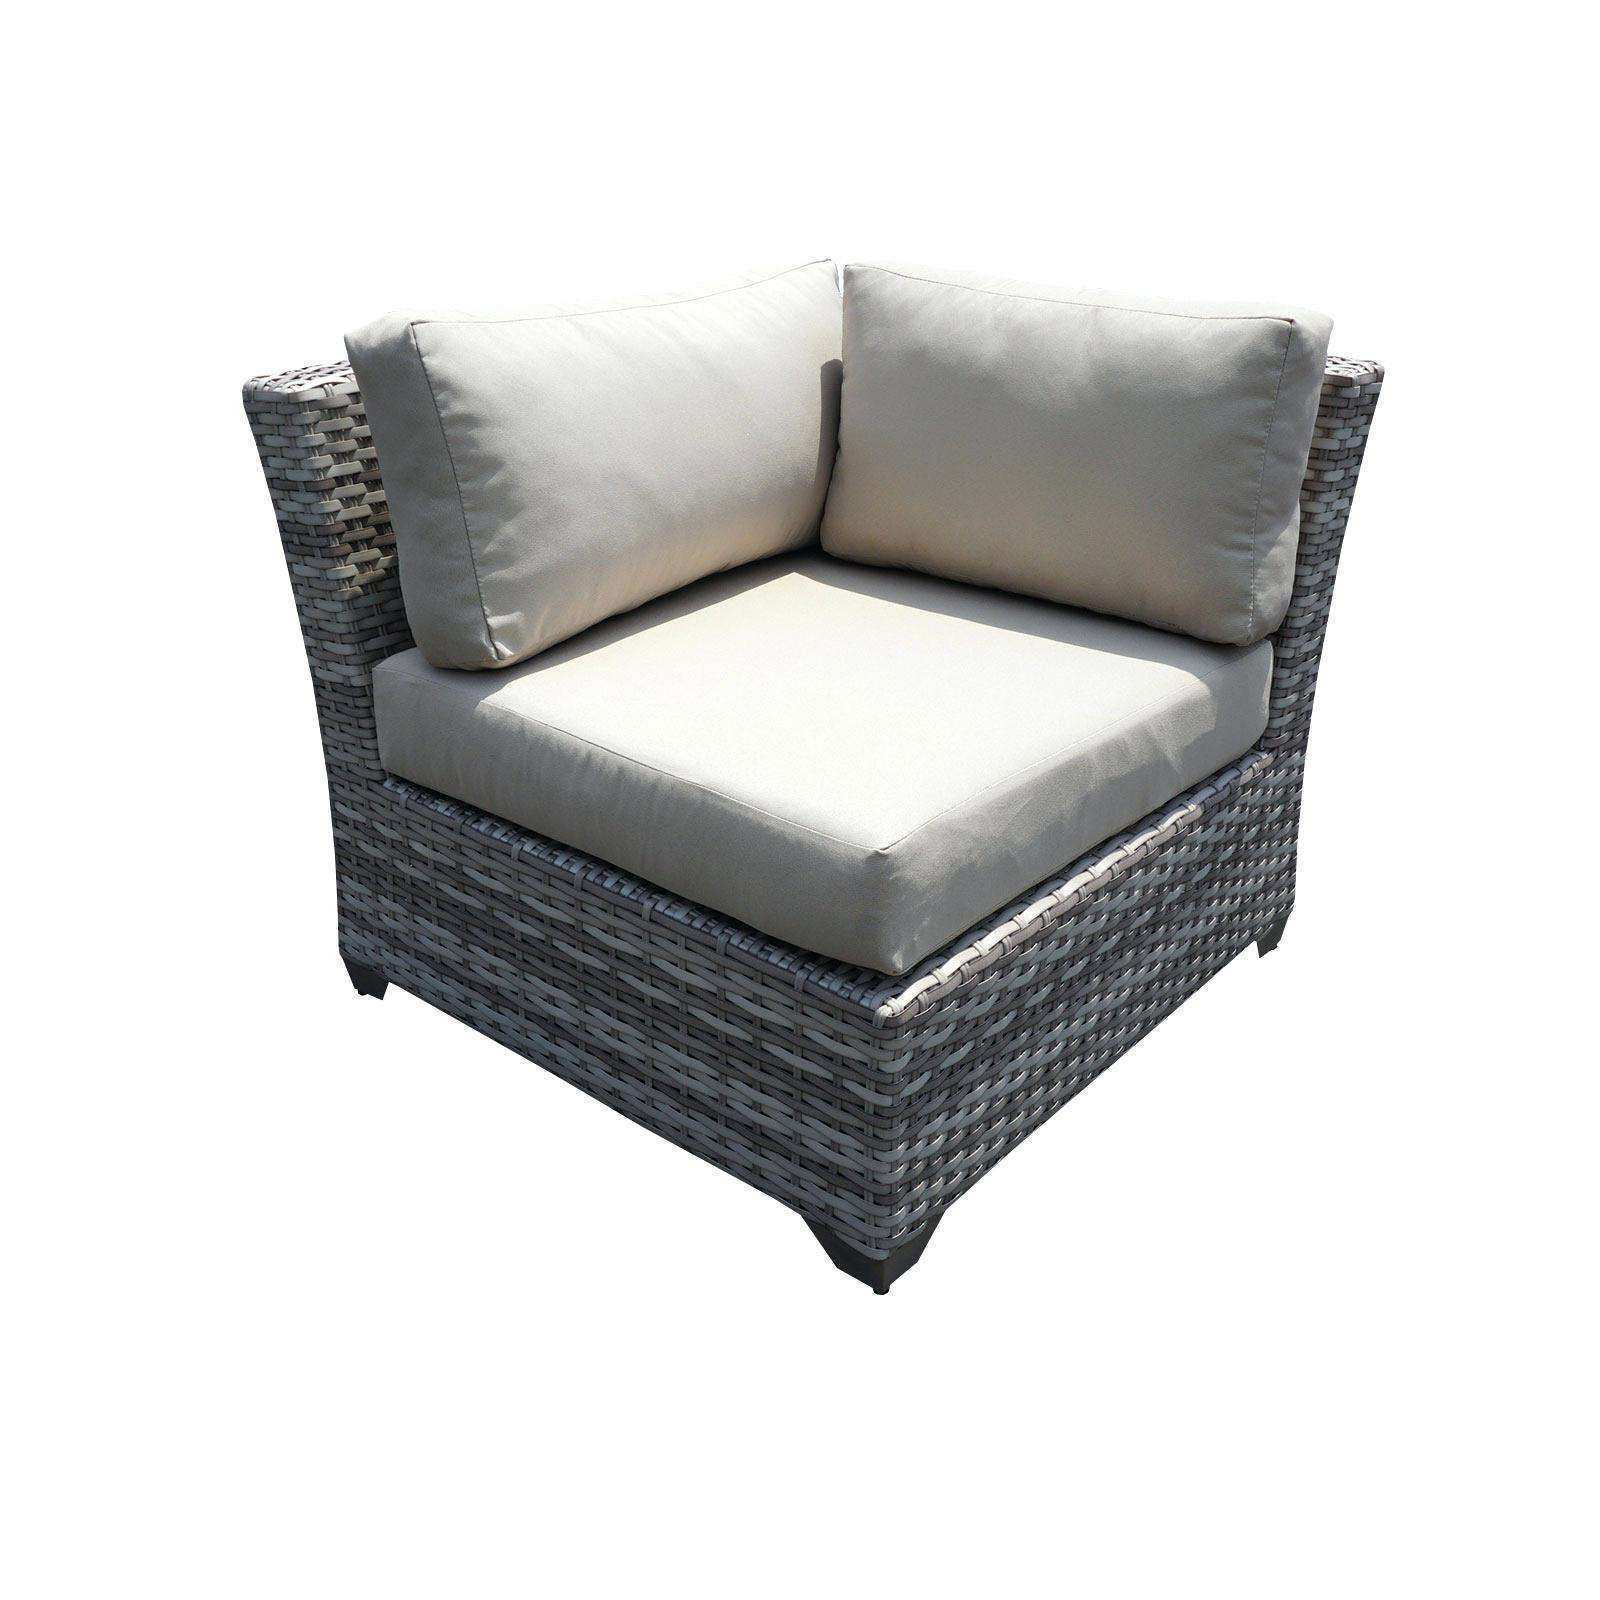 How to Make Chair Cushions with Piping Awesome Wicker Outdoor sofa